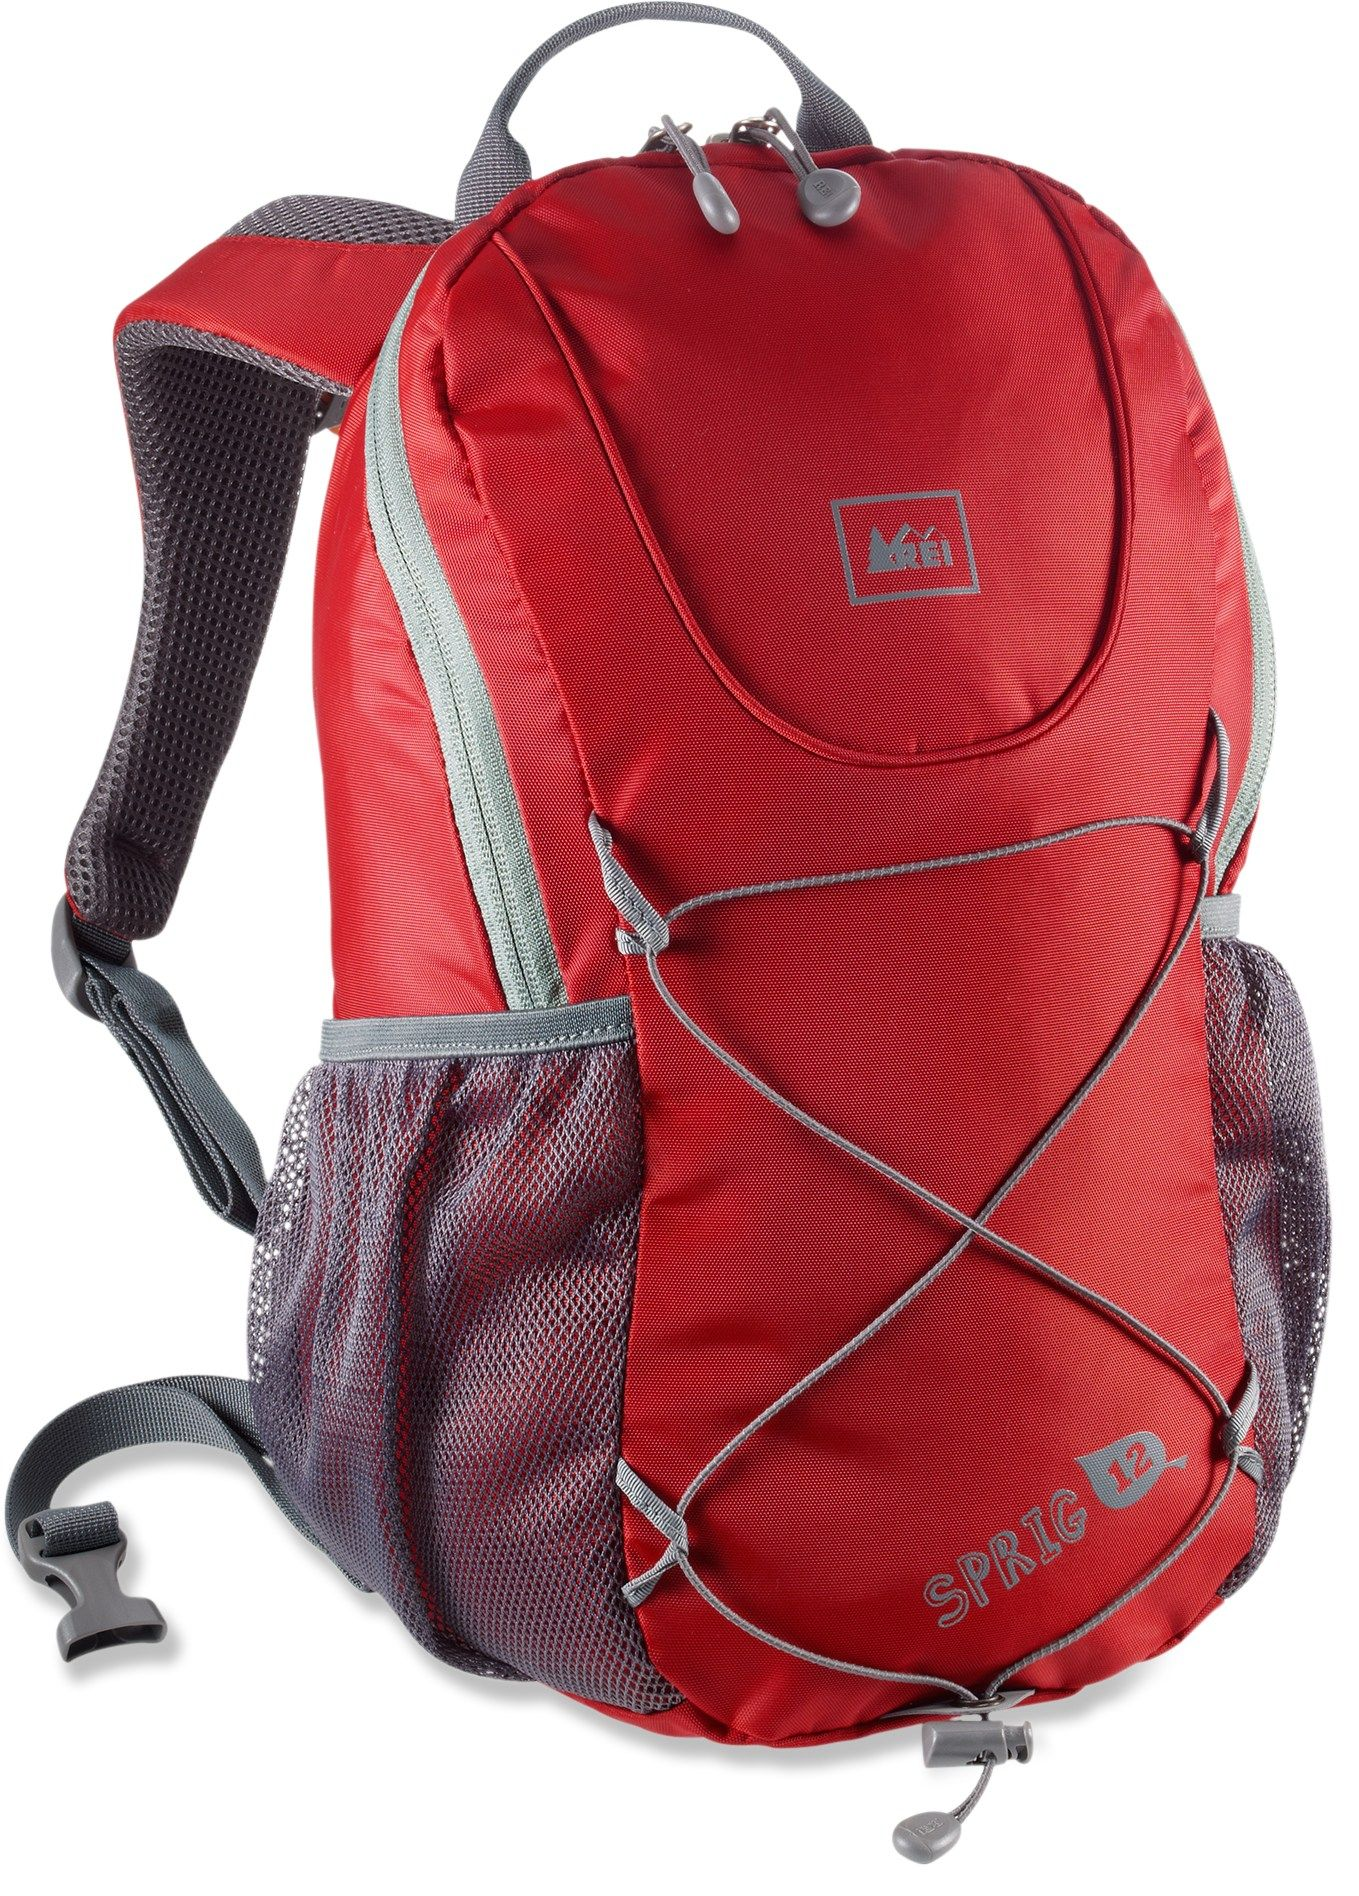 $21 99 REI Sprig 12 Pack Kids ages 5 8